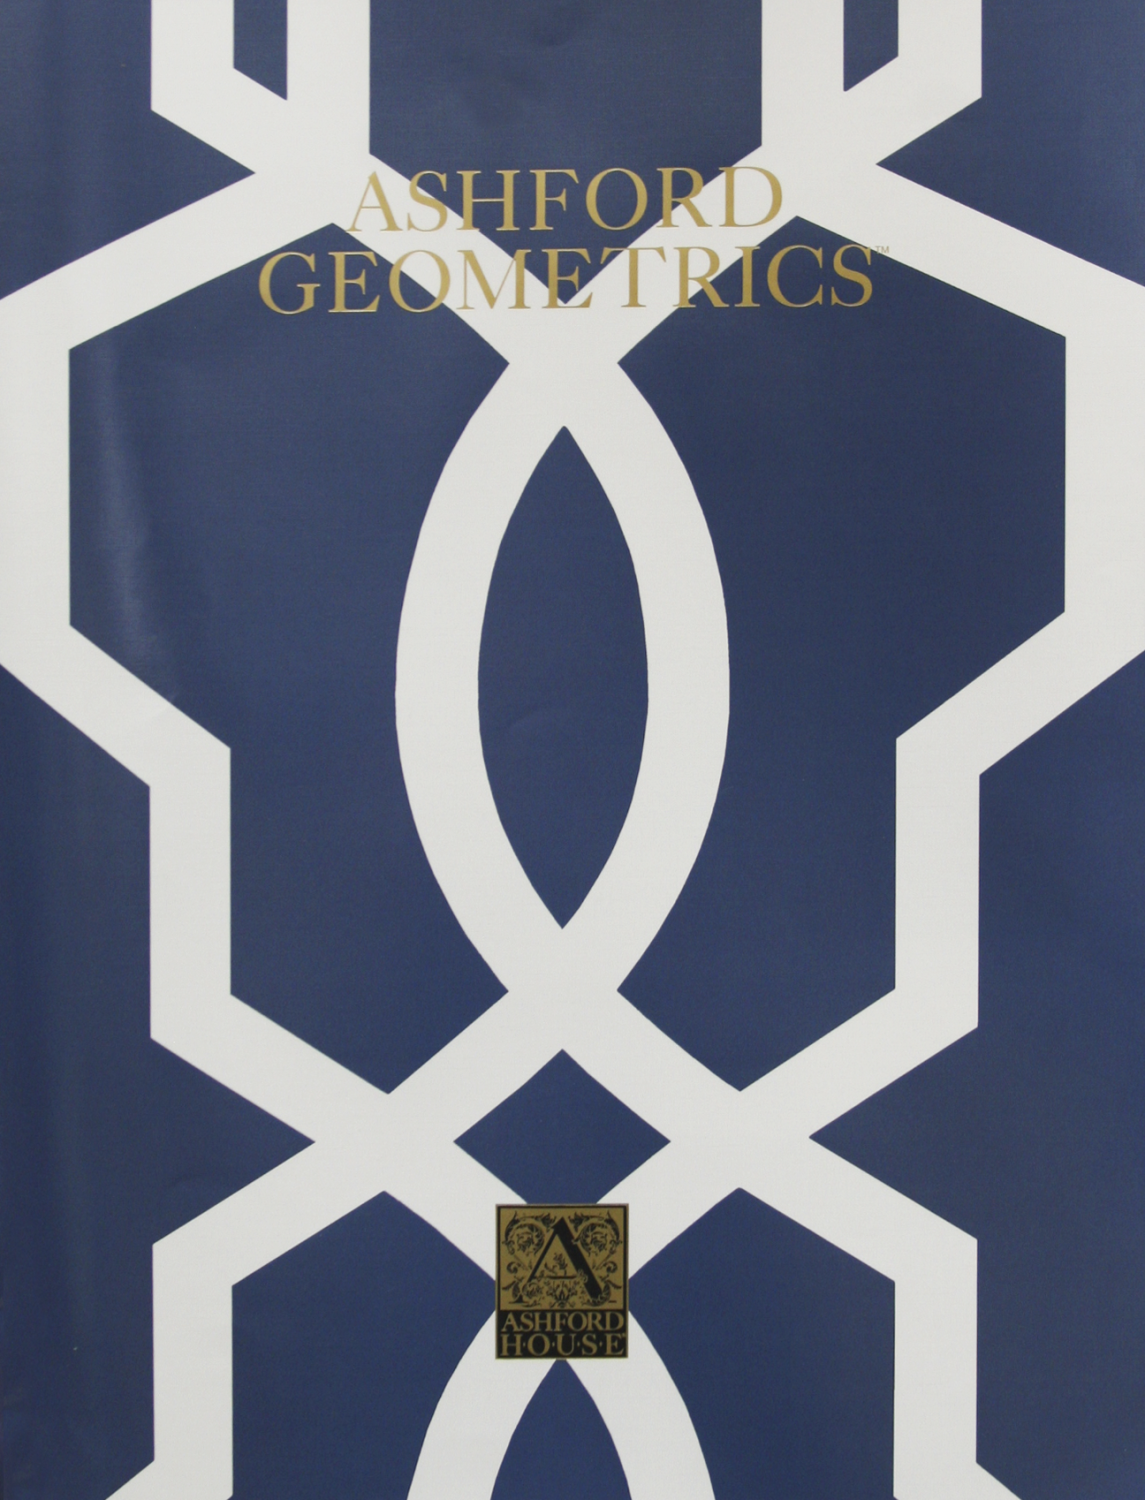 Ashford Geometrics Wallpaper Collection